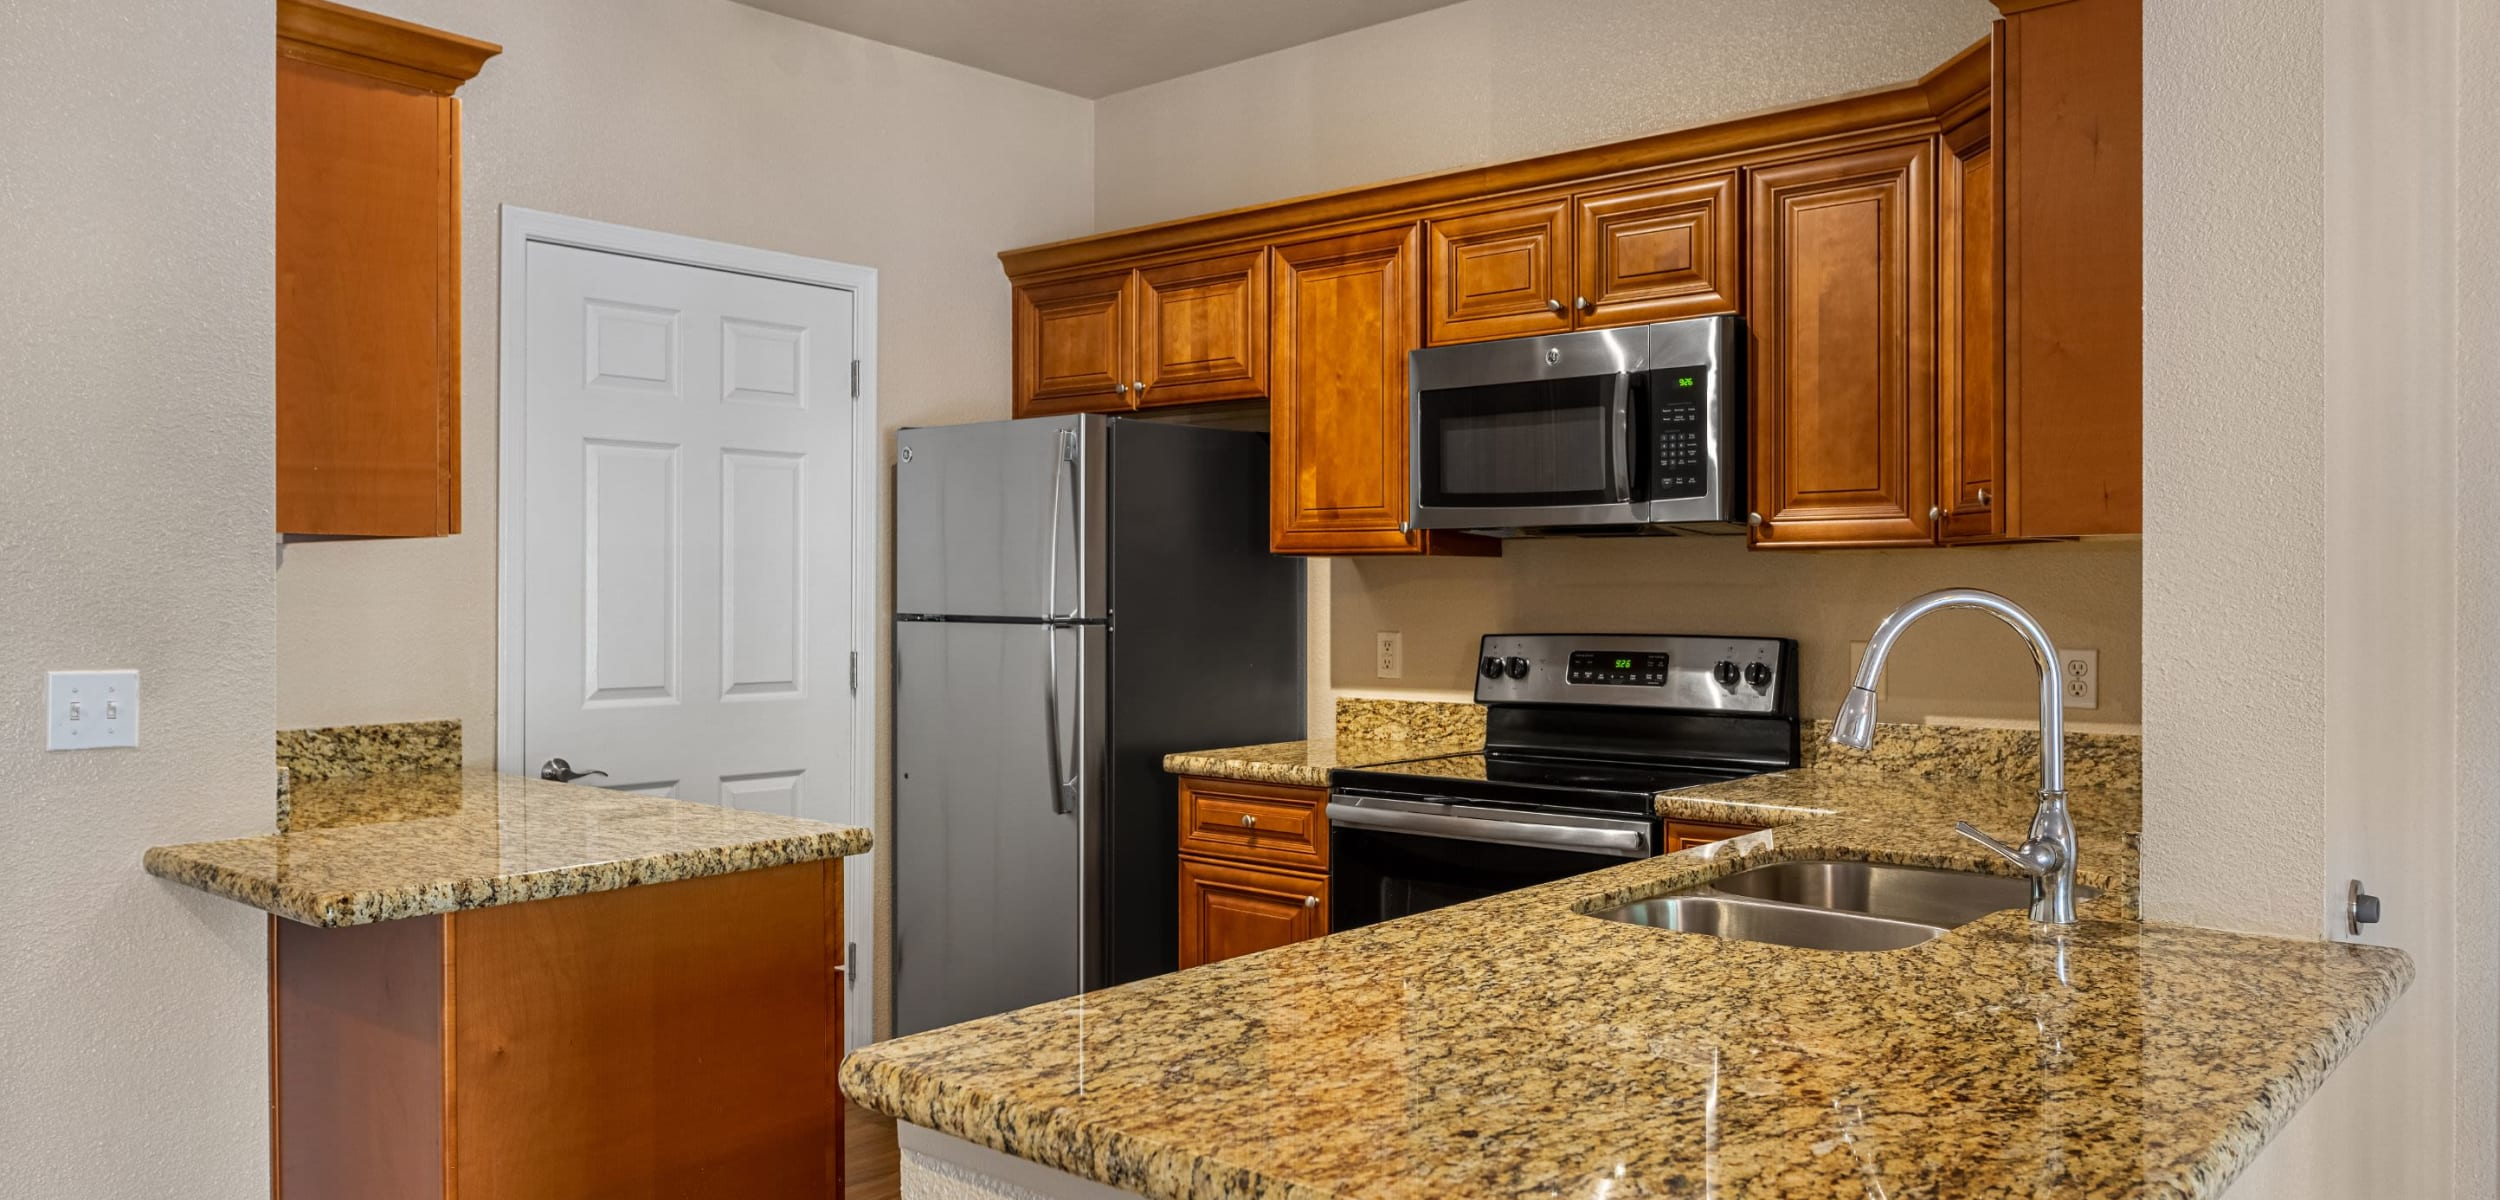 Modern kitchen with granite style counters at Azure Creek in Cave Creek, Arizona